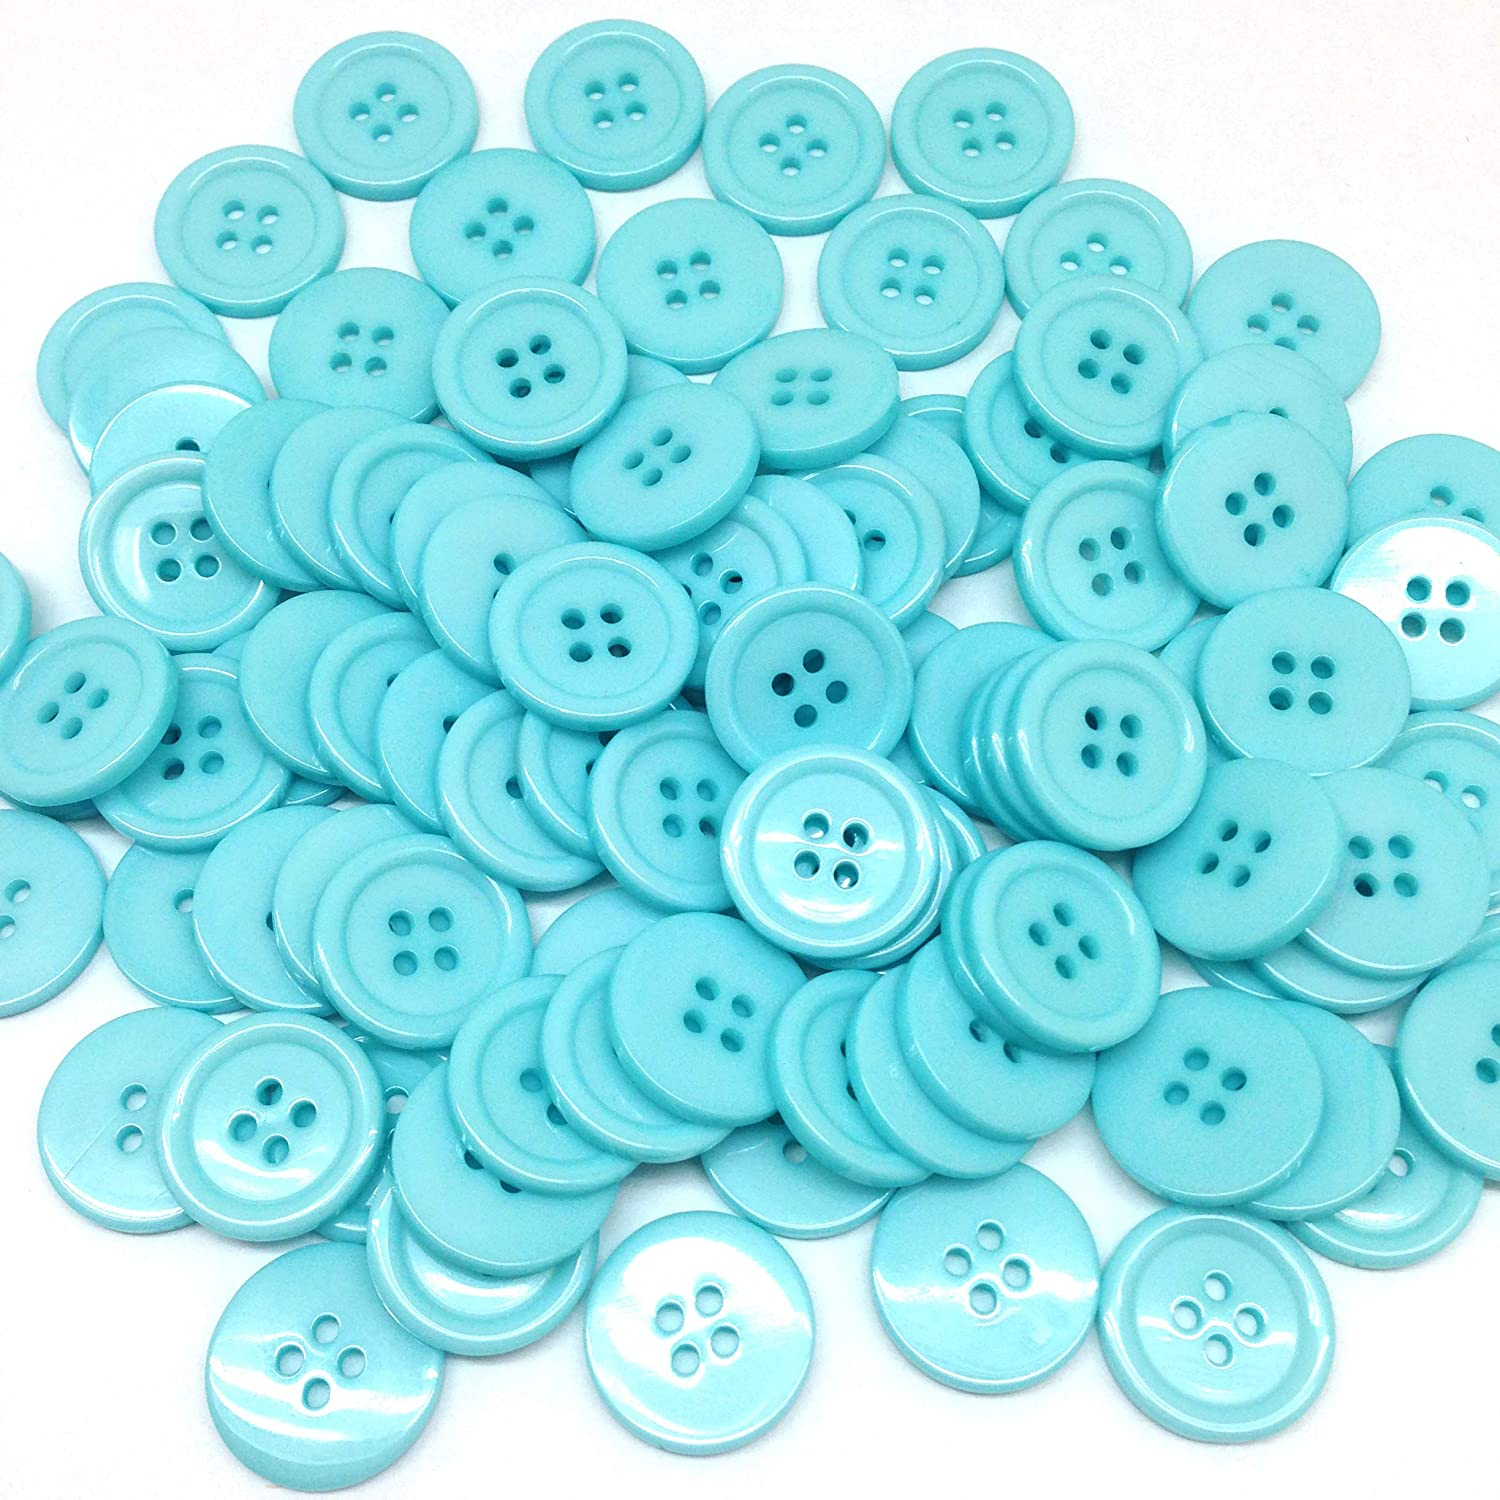 PEPPERLONELY 96PC Light Blue Flat Round 4 Holes Resin Buttons, 20x3mm(13/16x1/8 Inch)